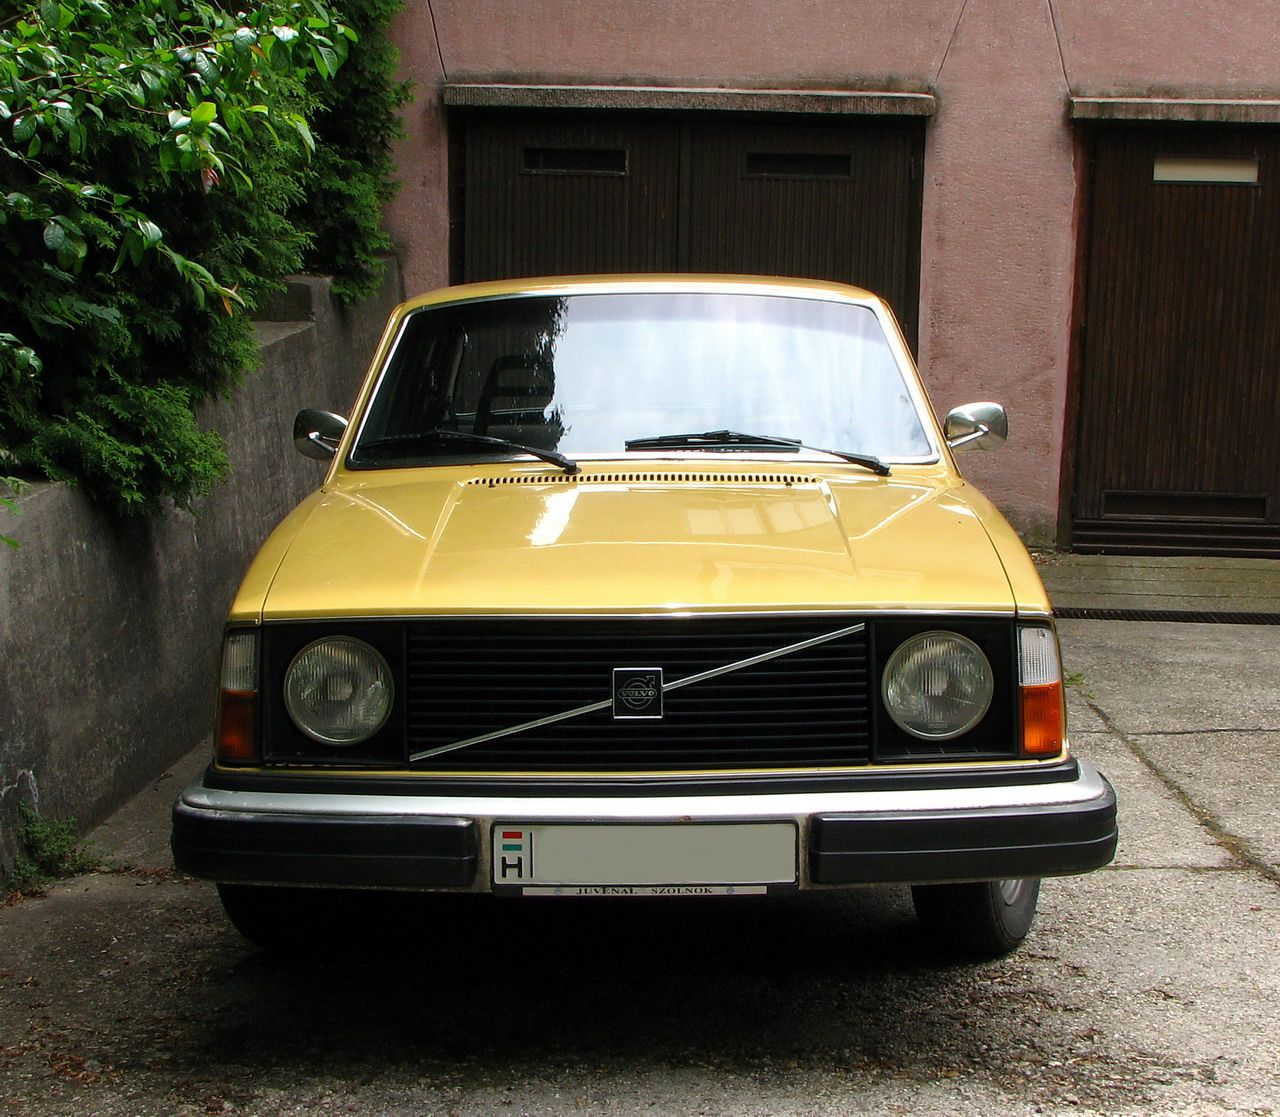 1000+ Images About Yellow Volvo On Pinterest